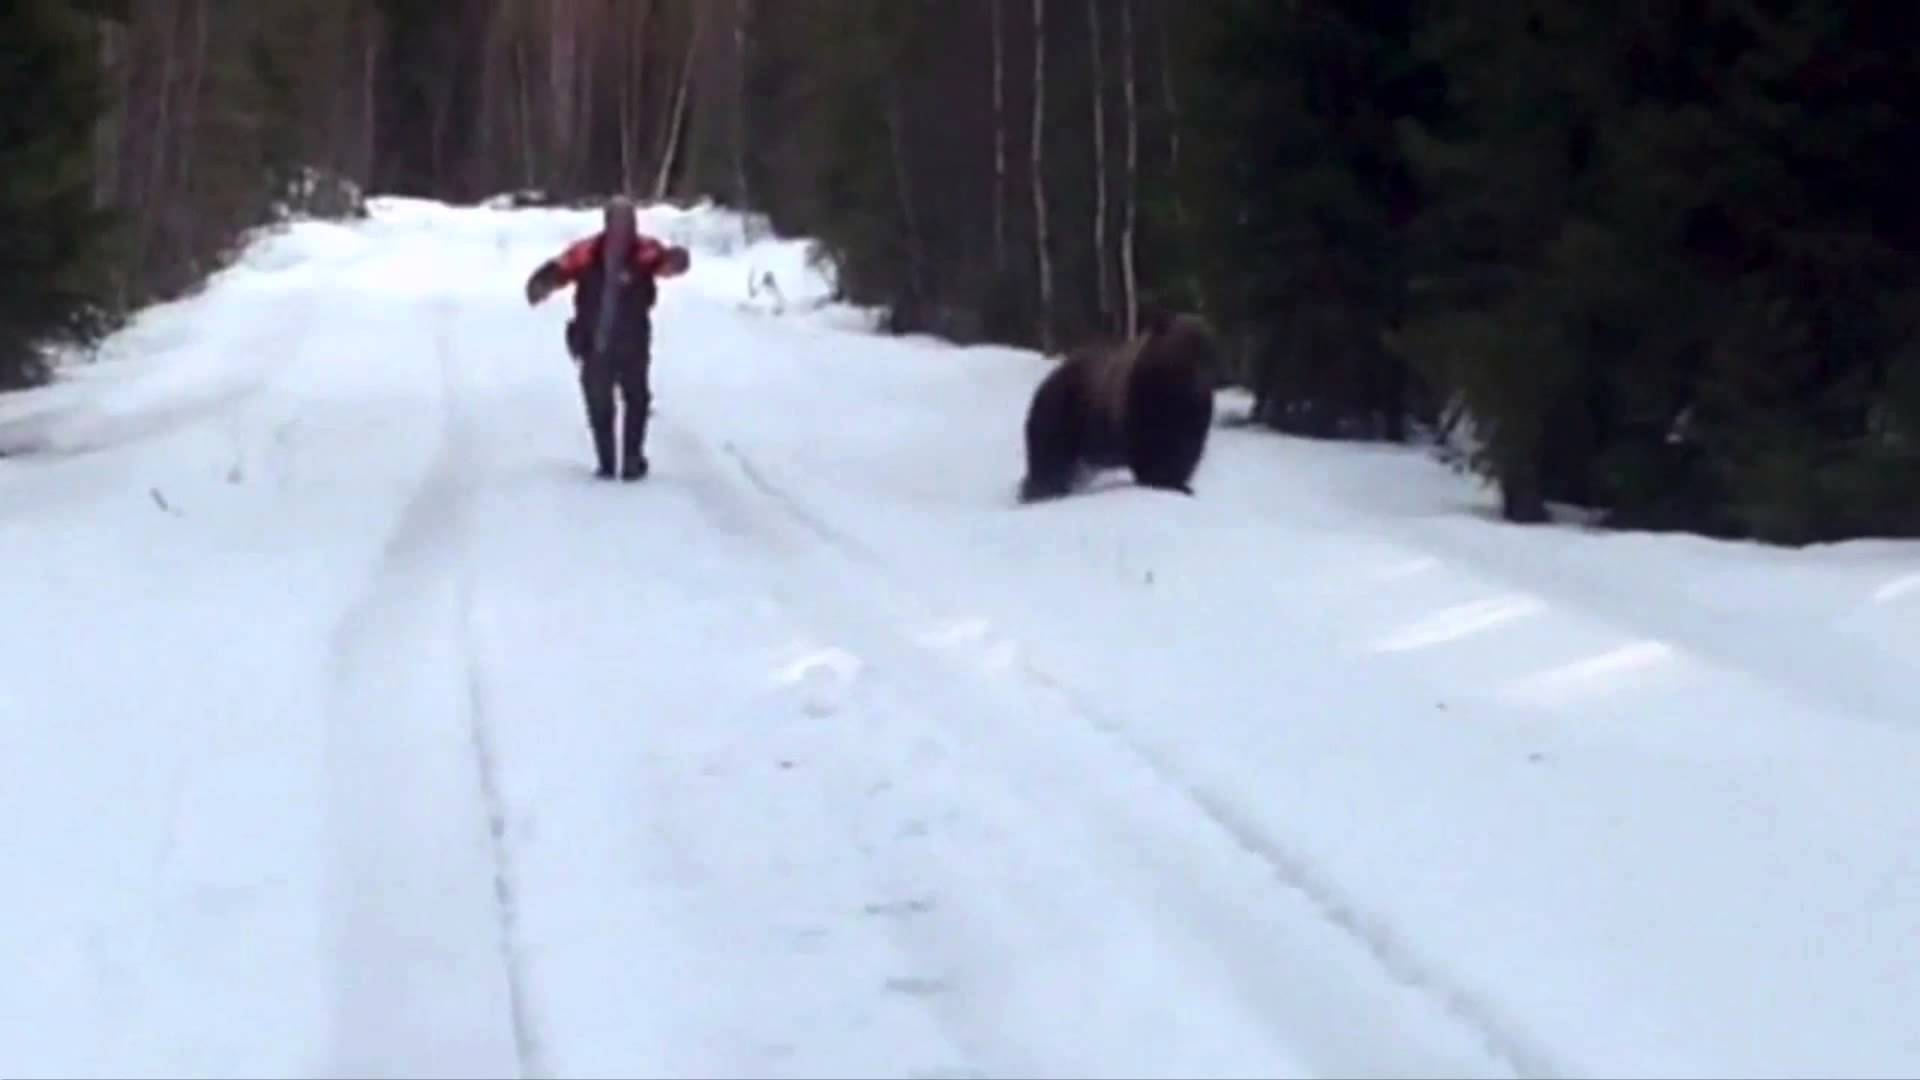 Man scares bear with roar